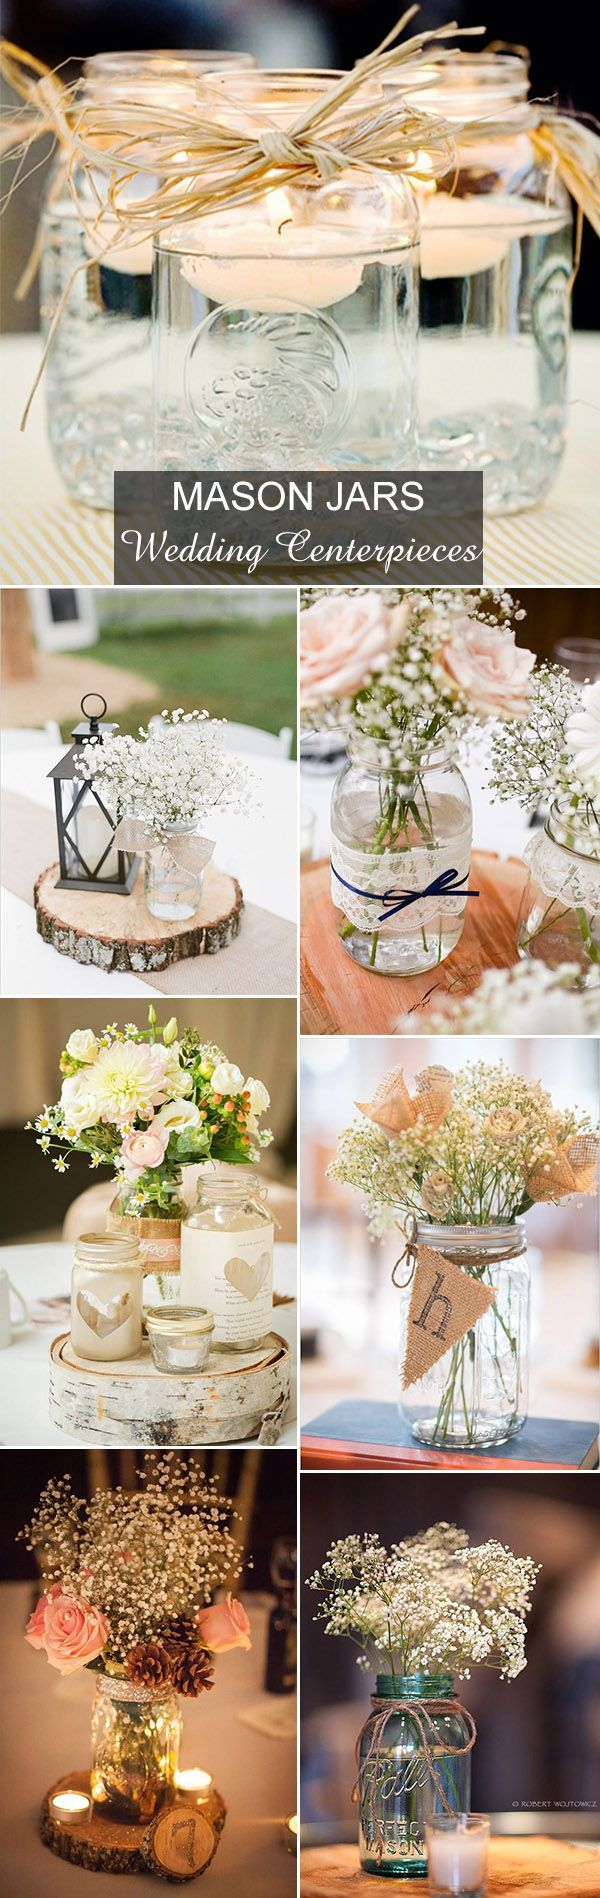 country rustic mason jars inspired wedding centerpieces ideas #wonderfulwedding